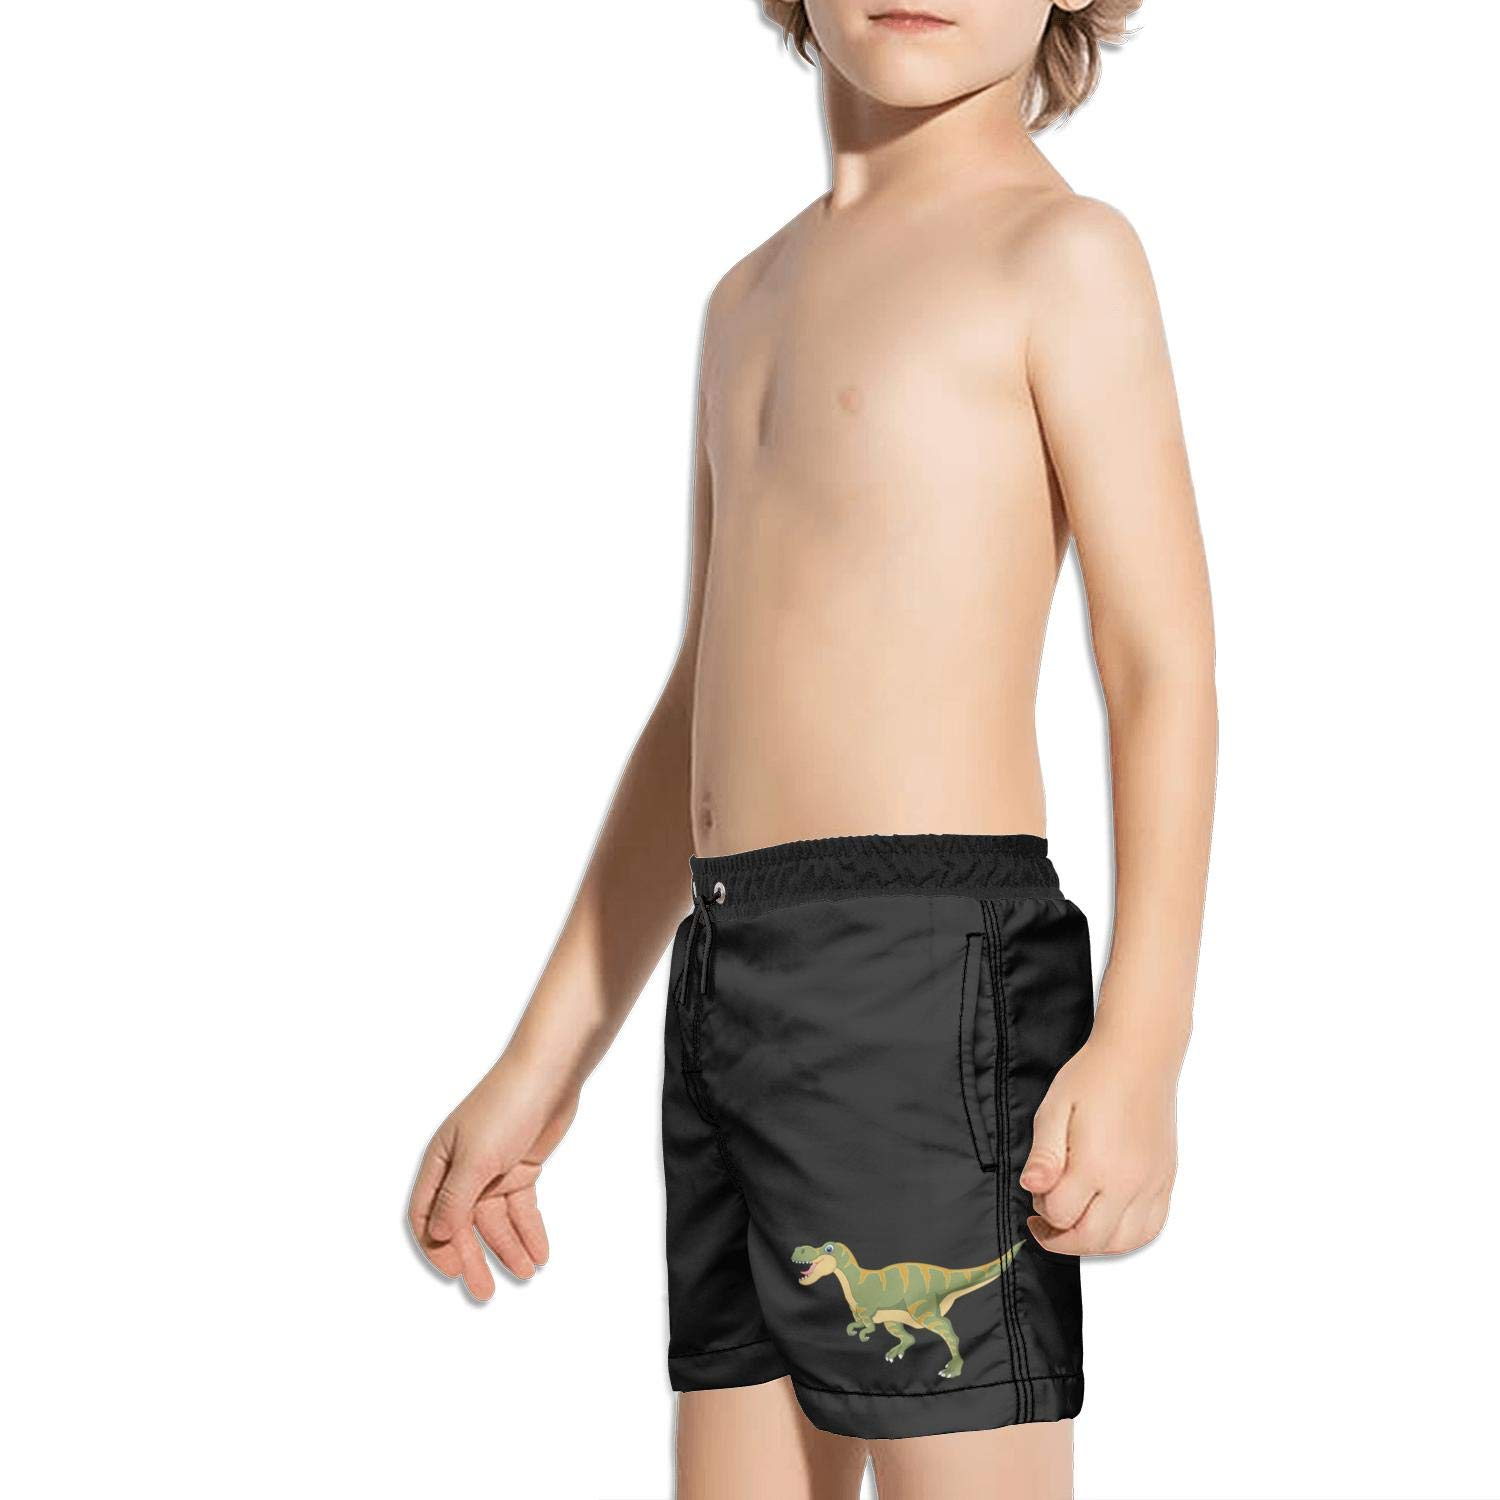 Ouxioaz Boys Swim Trunk Baby Untamed T Rex Dinosaur Beach Board Shorts